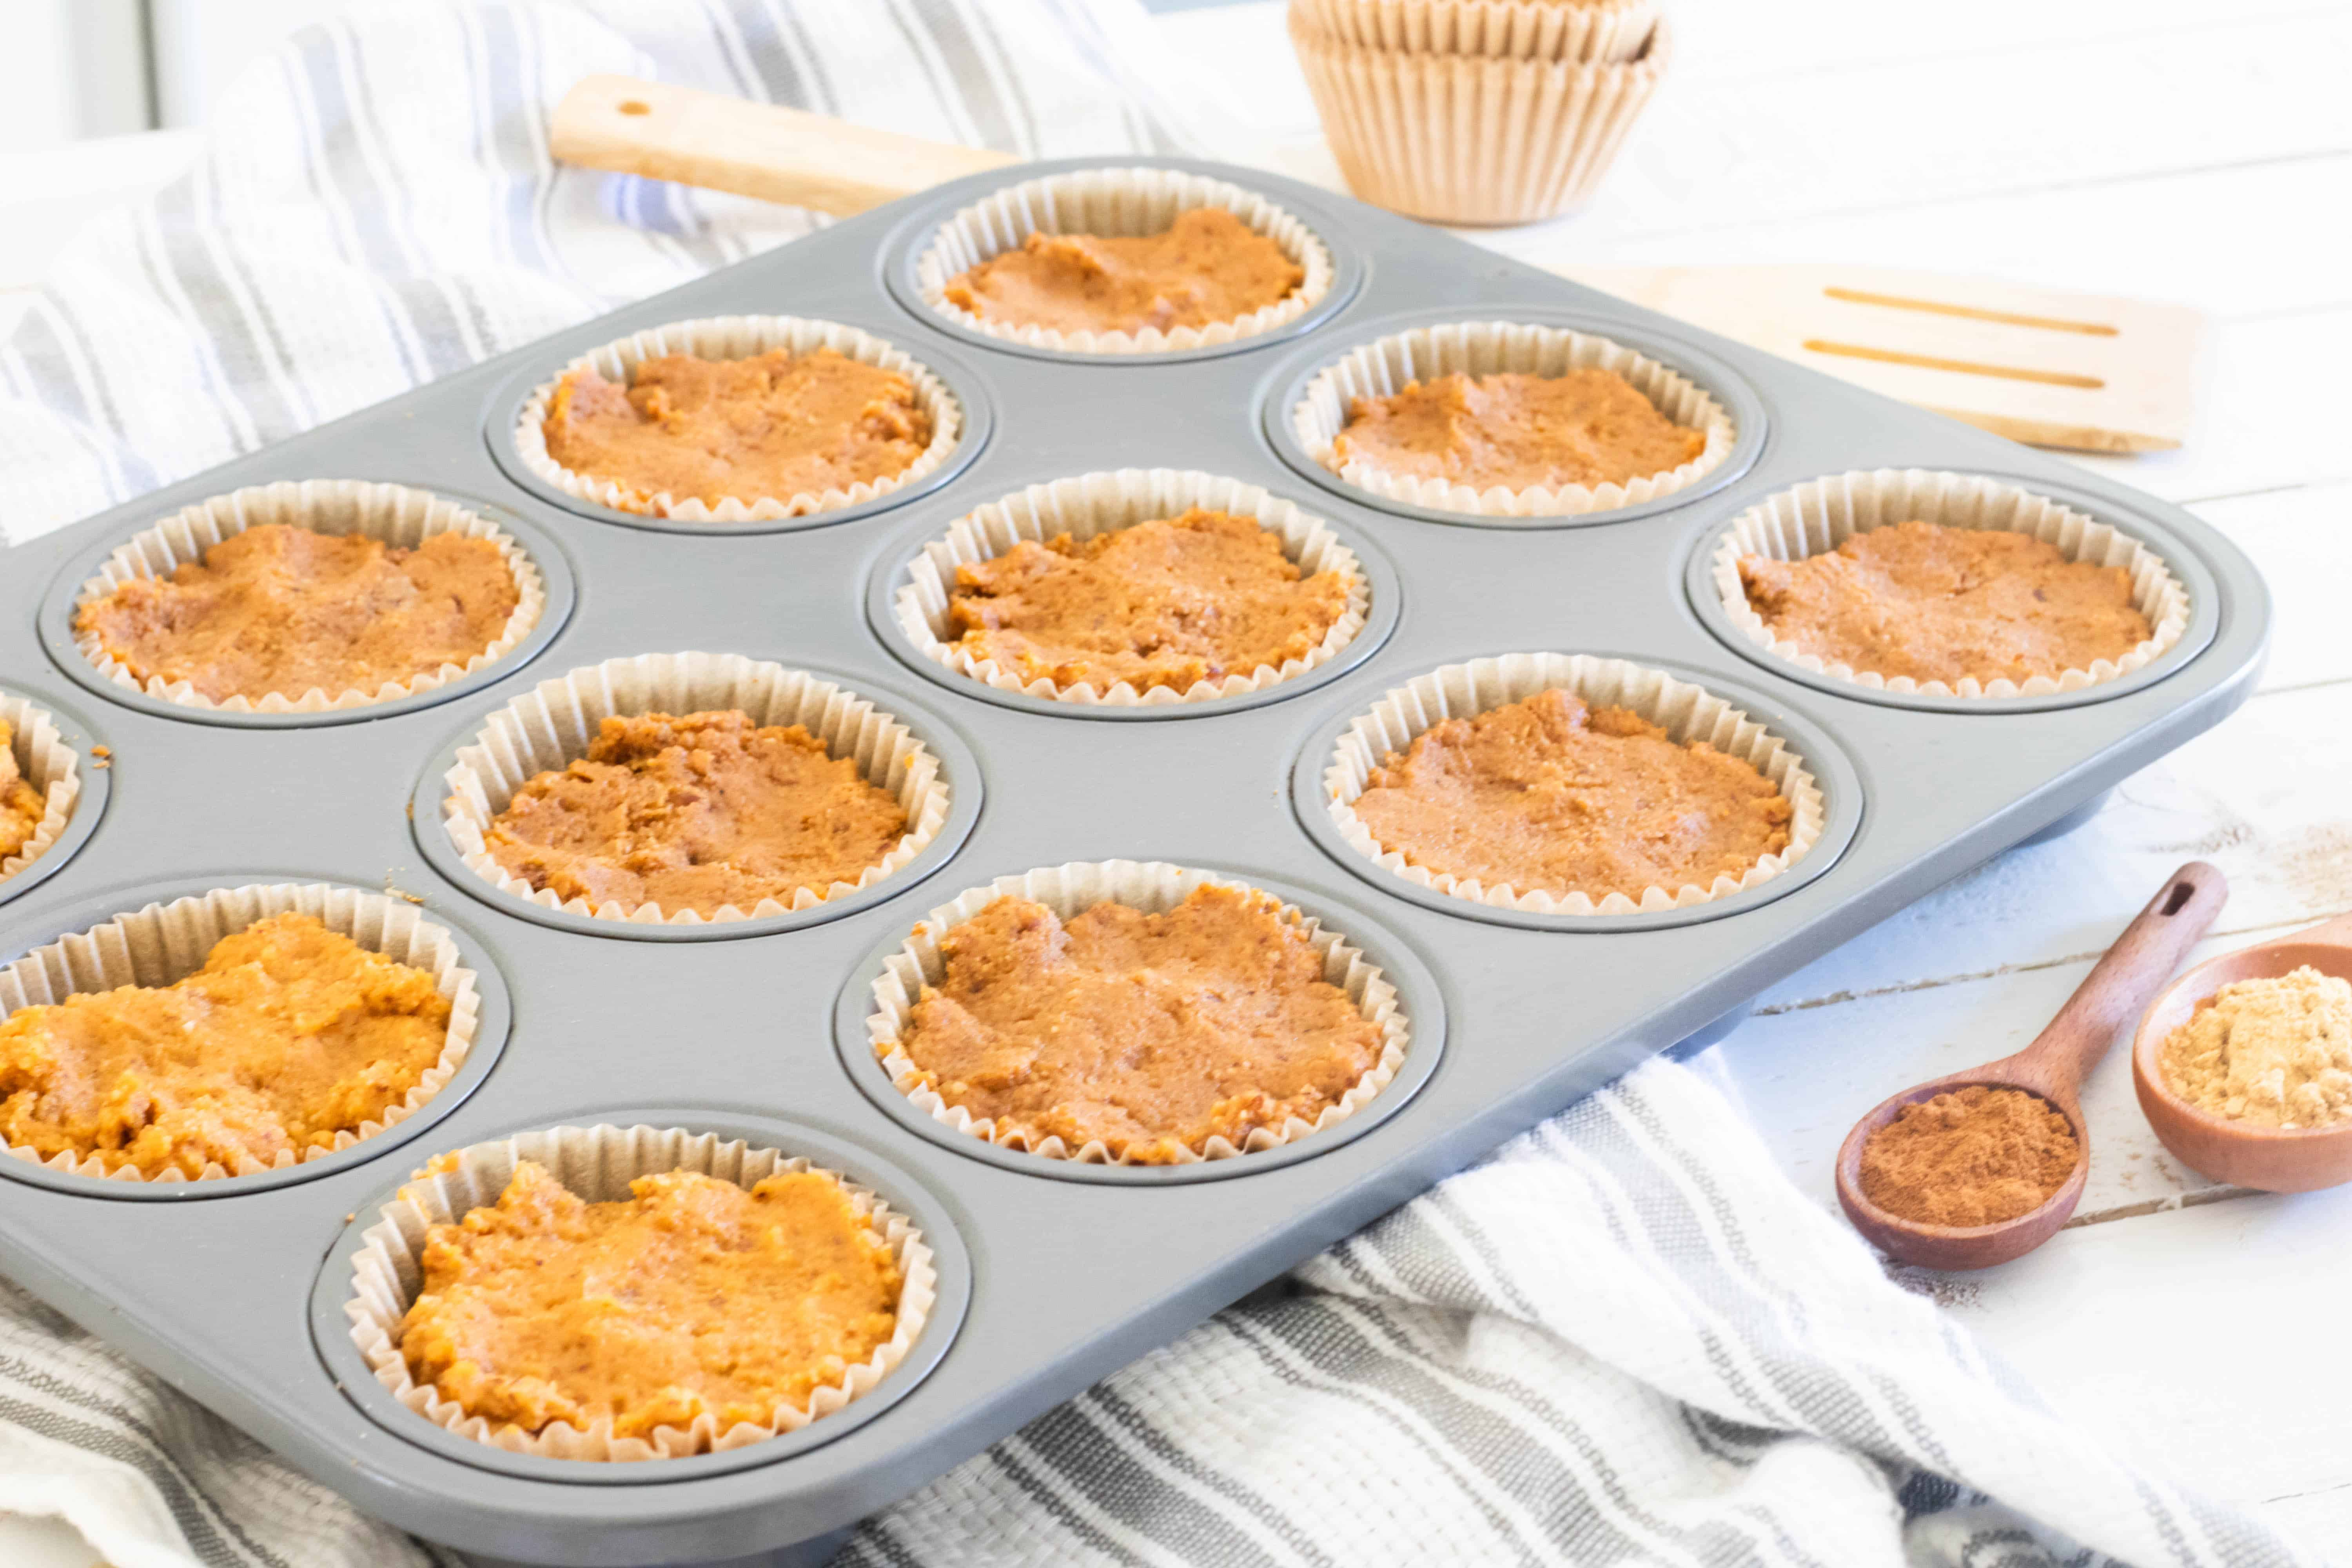 Pumpkin batter in a muffin pan on gray and white strip towel.